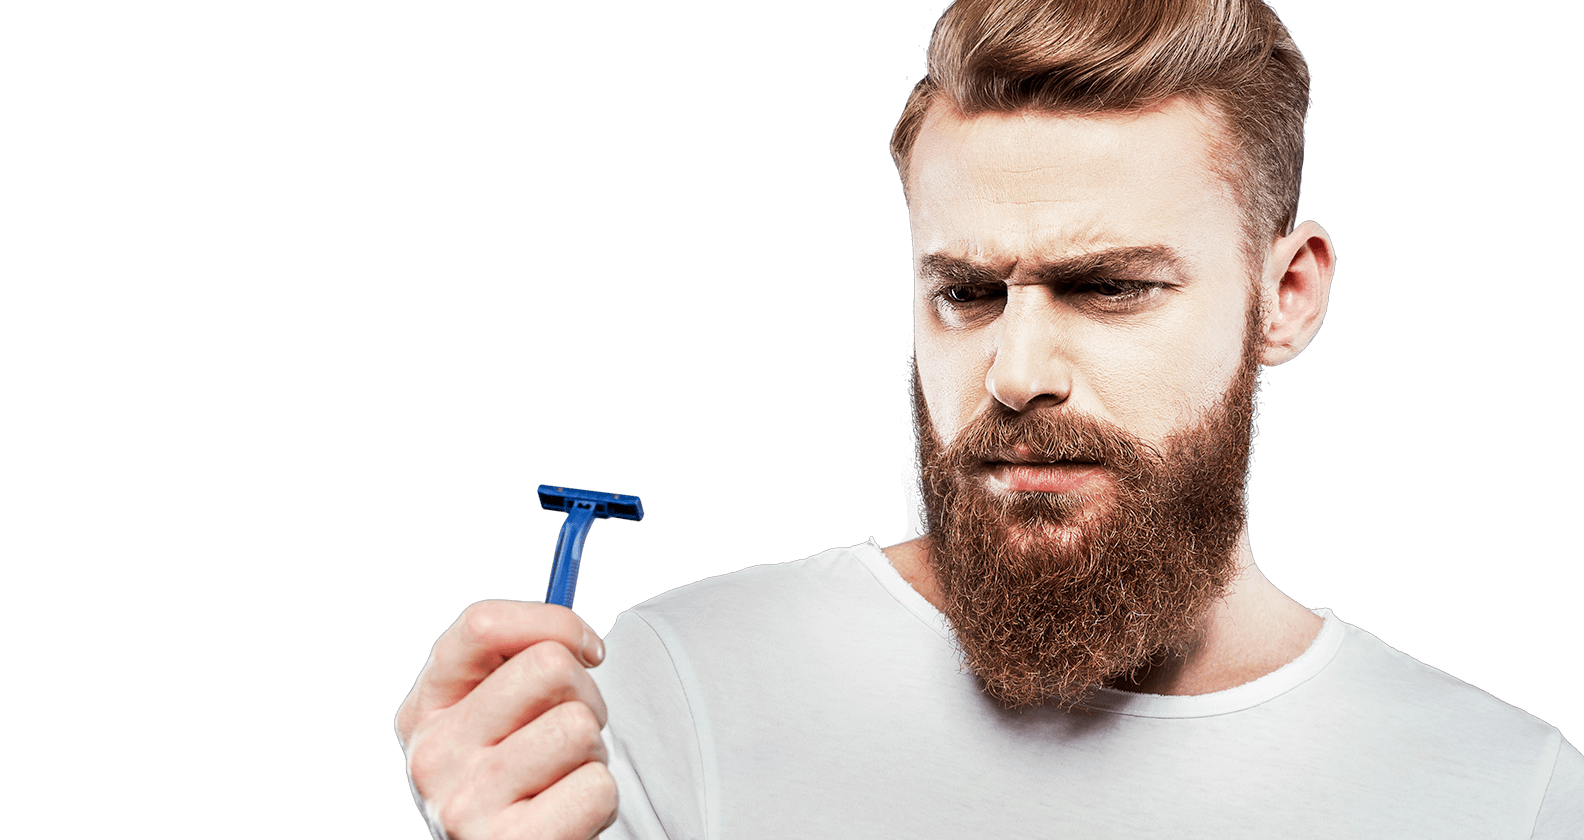 What should I look for when buying a razor?